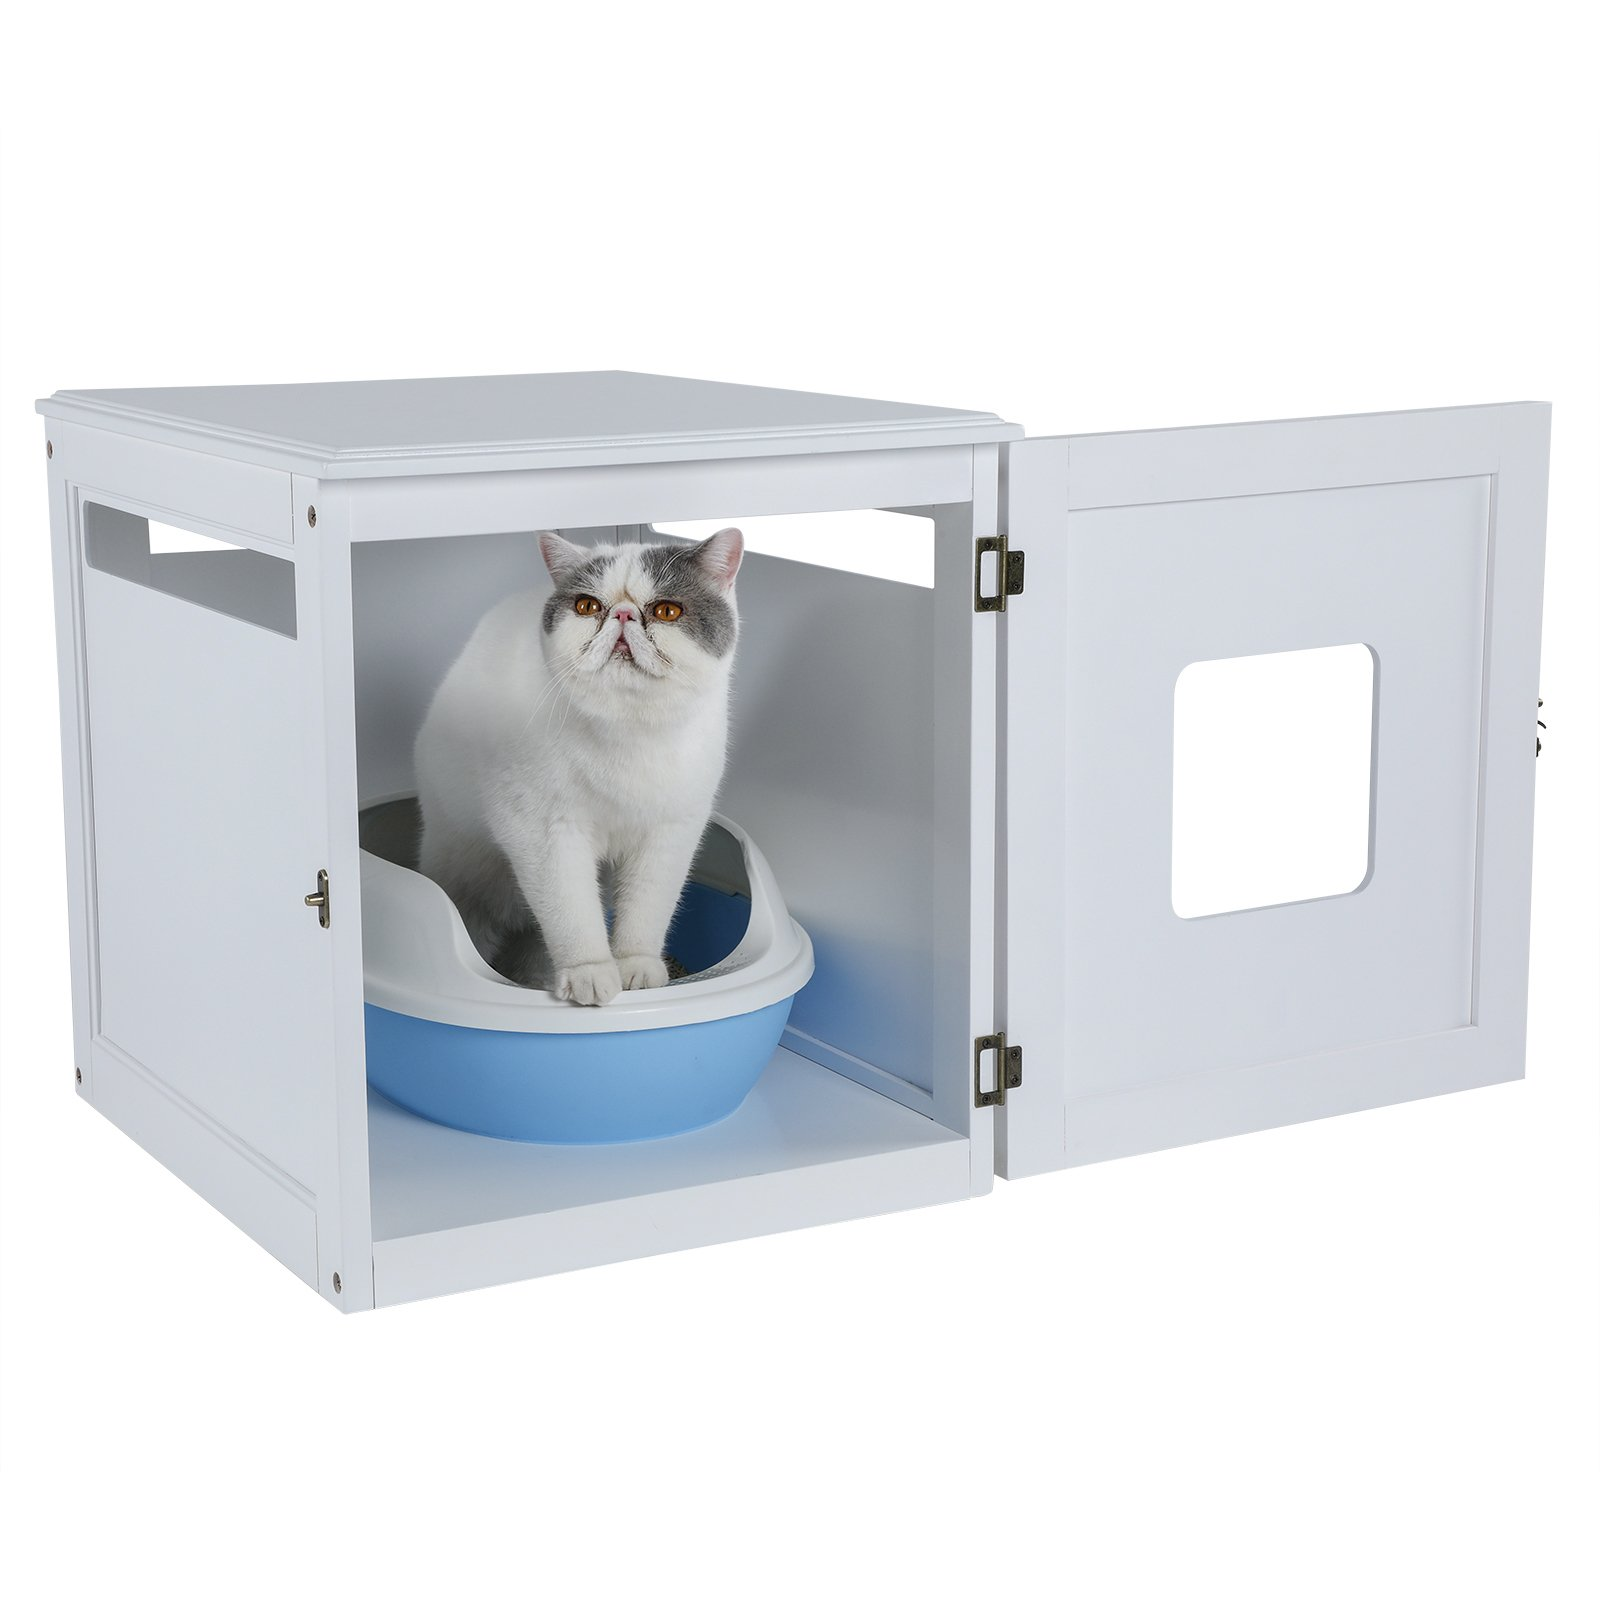 Petsfit Assemble Odorless Night Stand Pet House/Litter Box Furniture with Latch Holding 20'' x 24'' x 21''